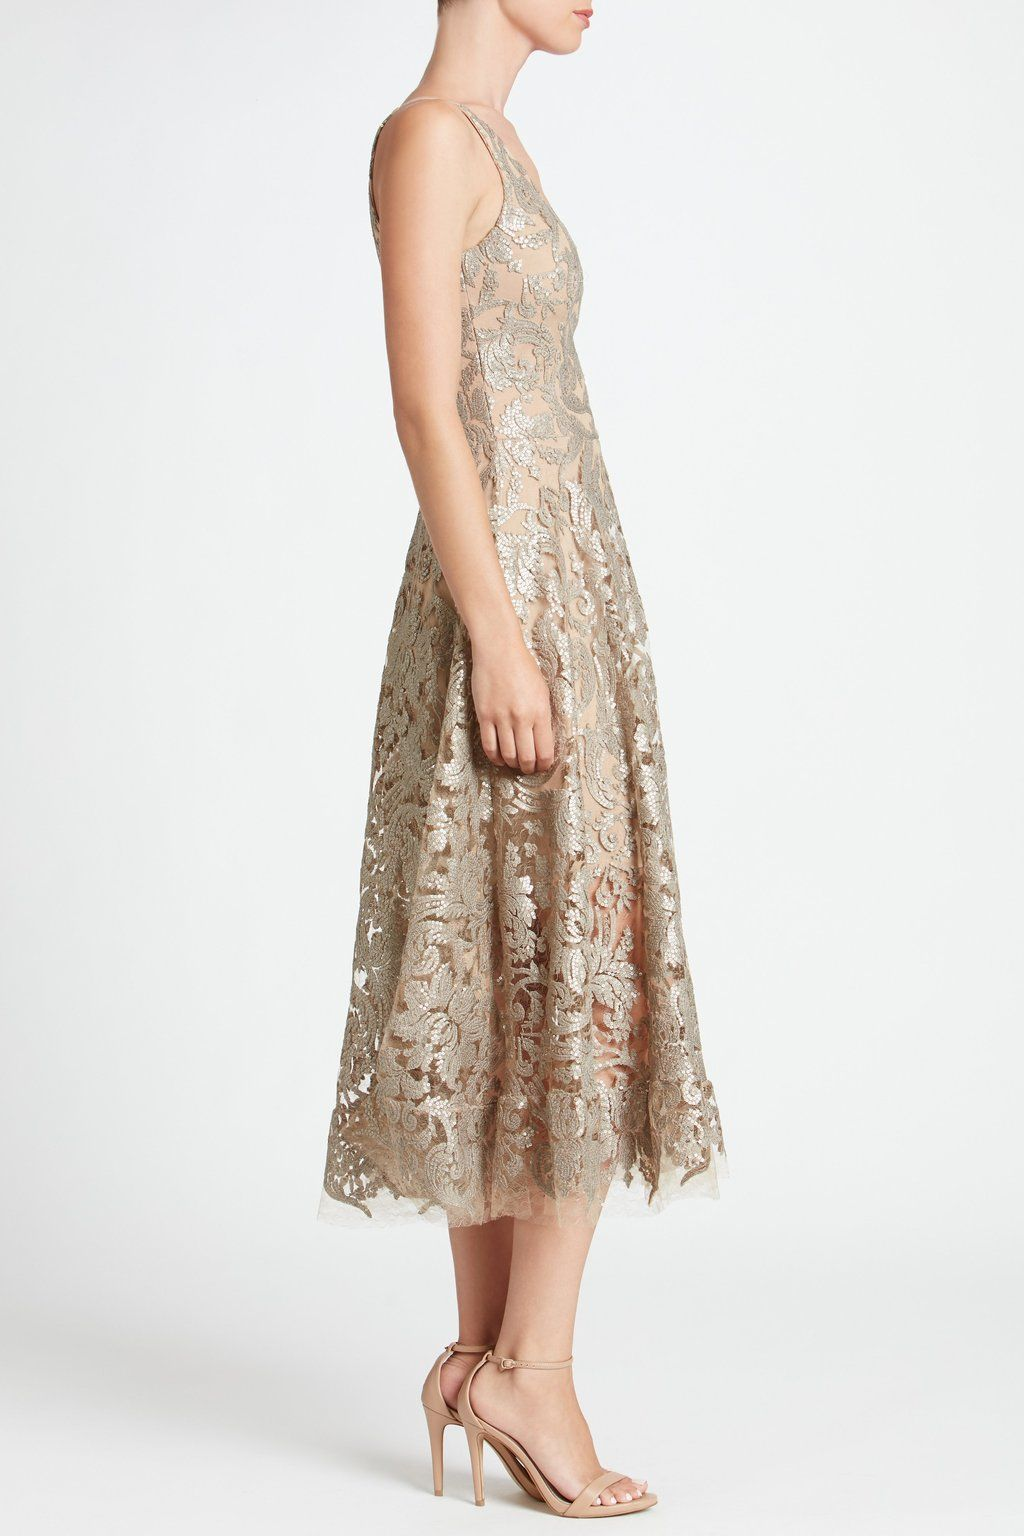 d0565f08c0d58 Blair Sequin Lace Fit and Flare Midi Dress - FINAL in 2019 | Mother ...